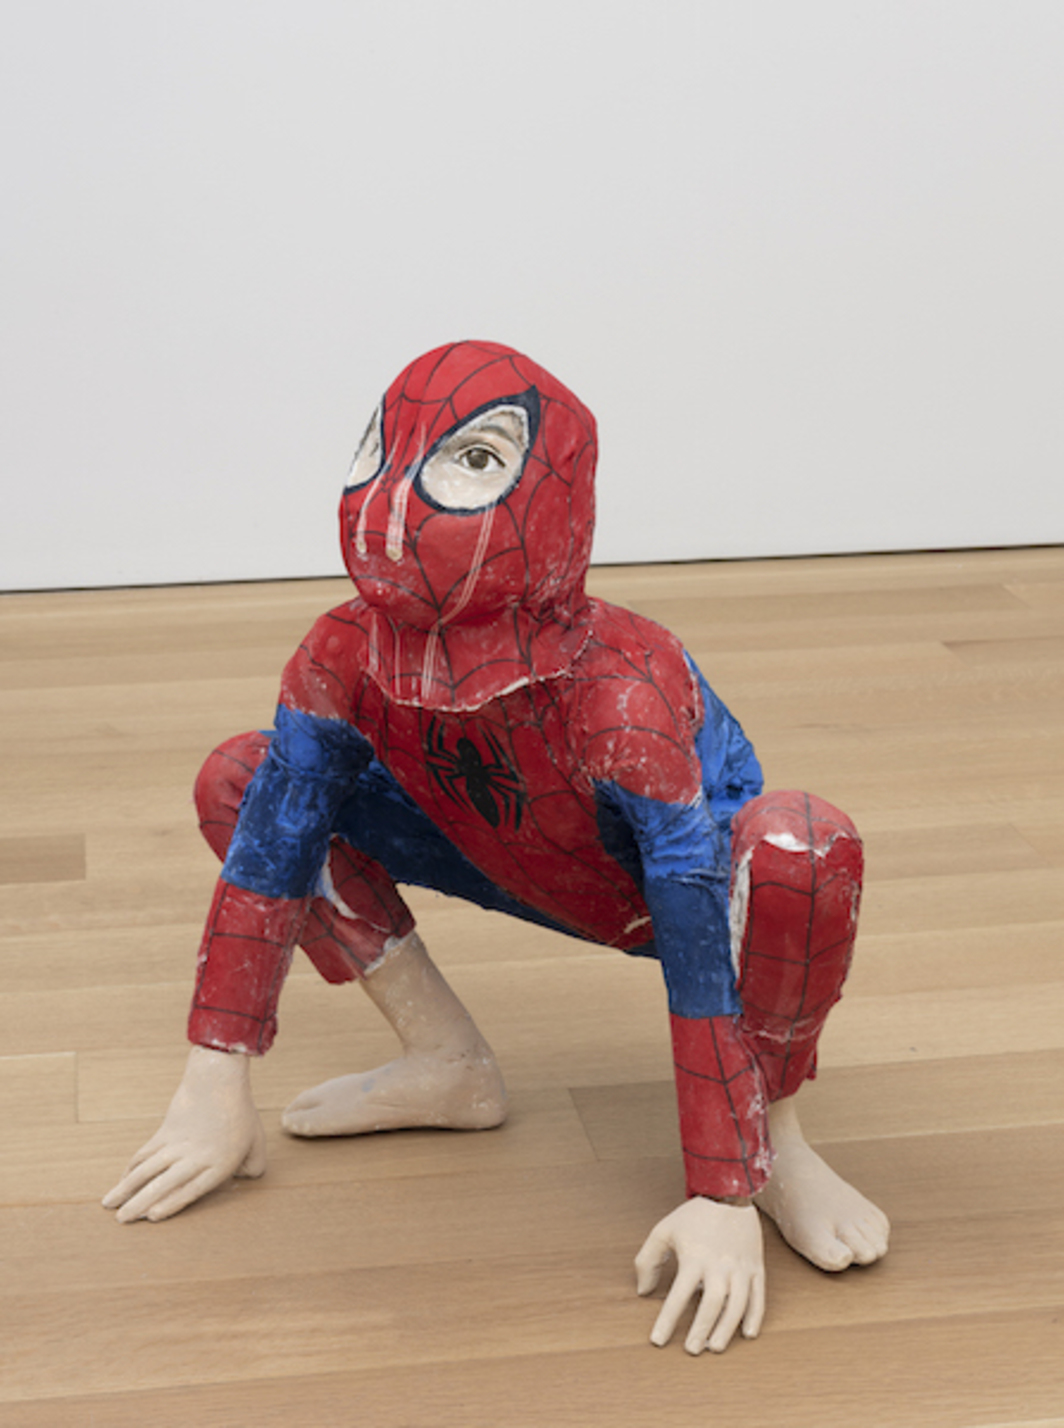 John Ahearn, Carlos/Spiderman, 2015, acrylic on cloth and plaster, dimensions variable.